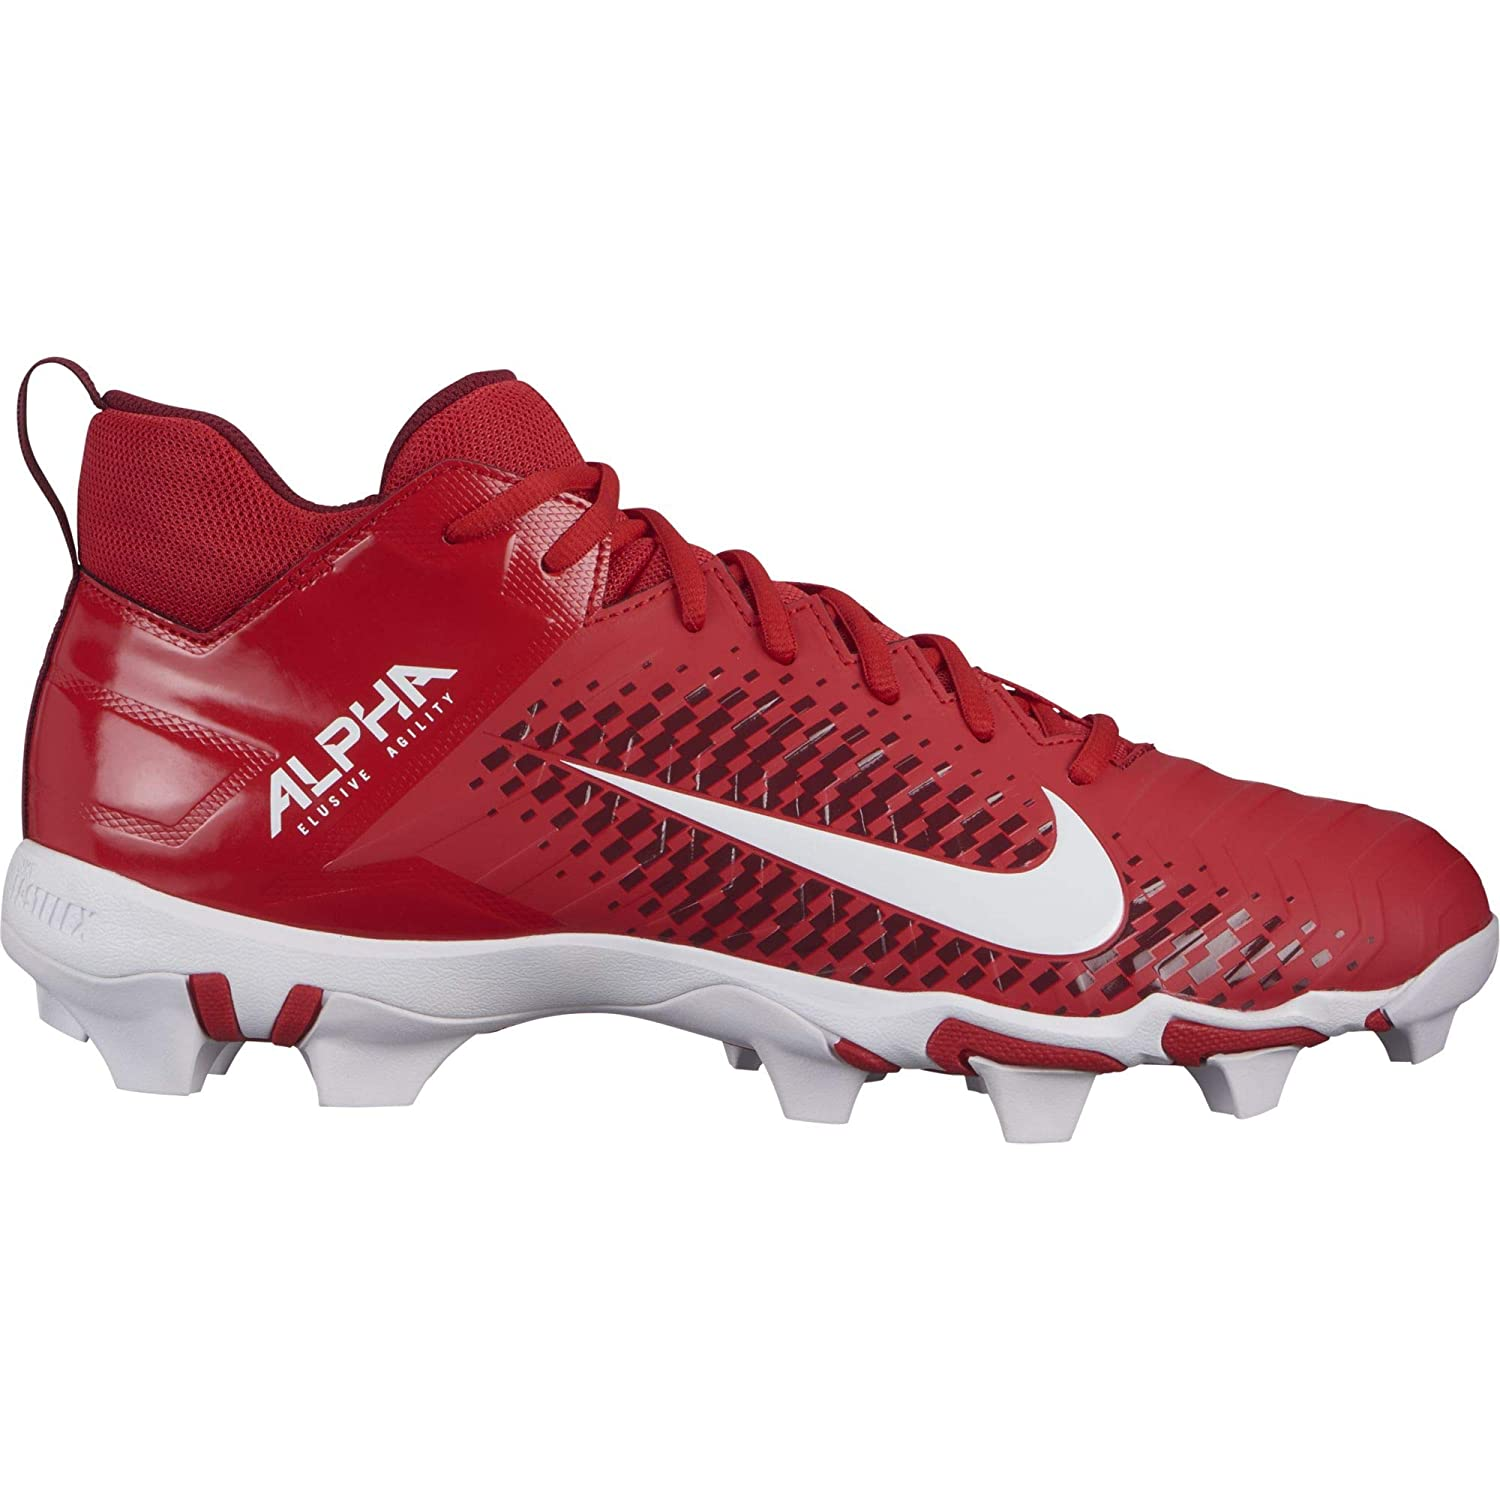 Nike Men's Alpha Menace 2 Shark Football Cleat University 赤/白い Size 7.5 M US